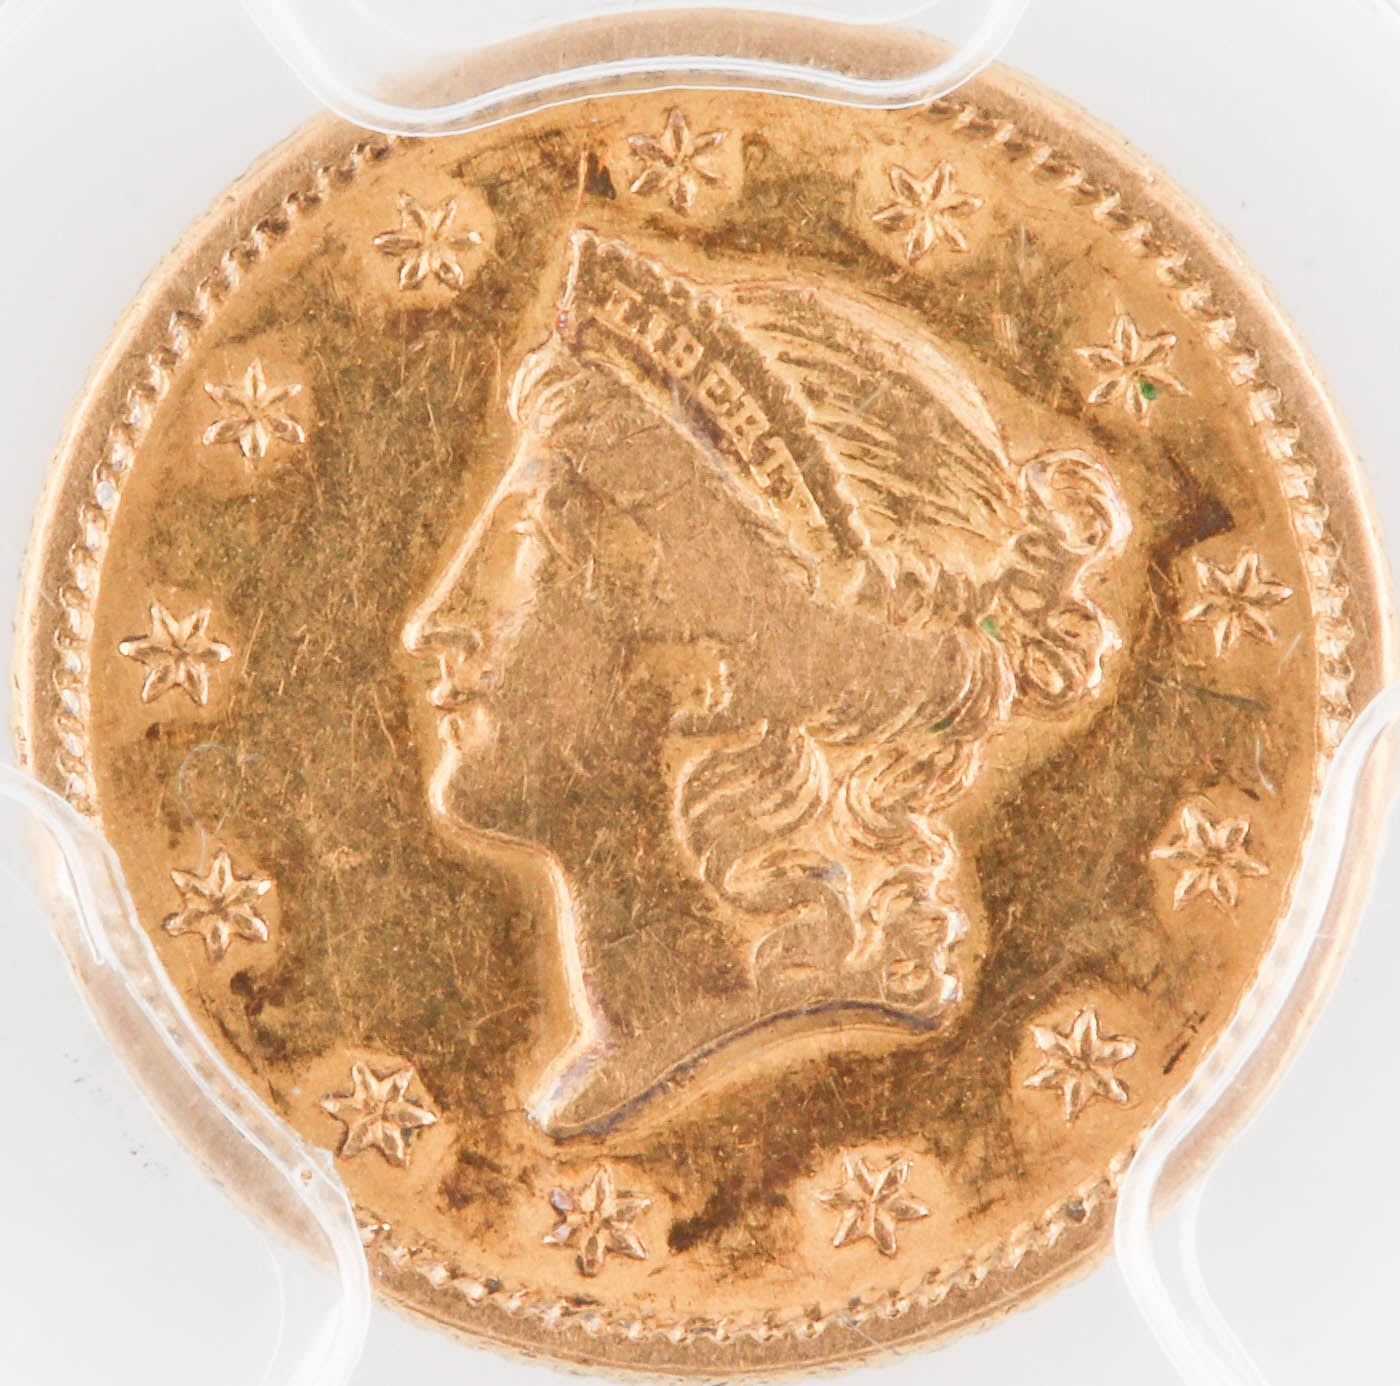 PCGS Certified 1849 Open Wreath Liberty Head $1 Gold Coin